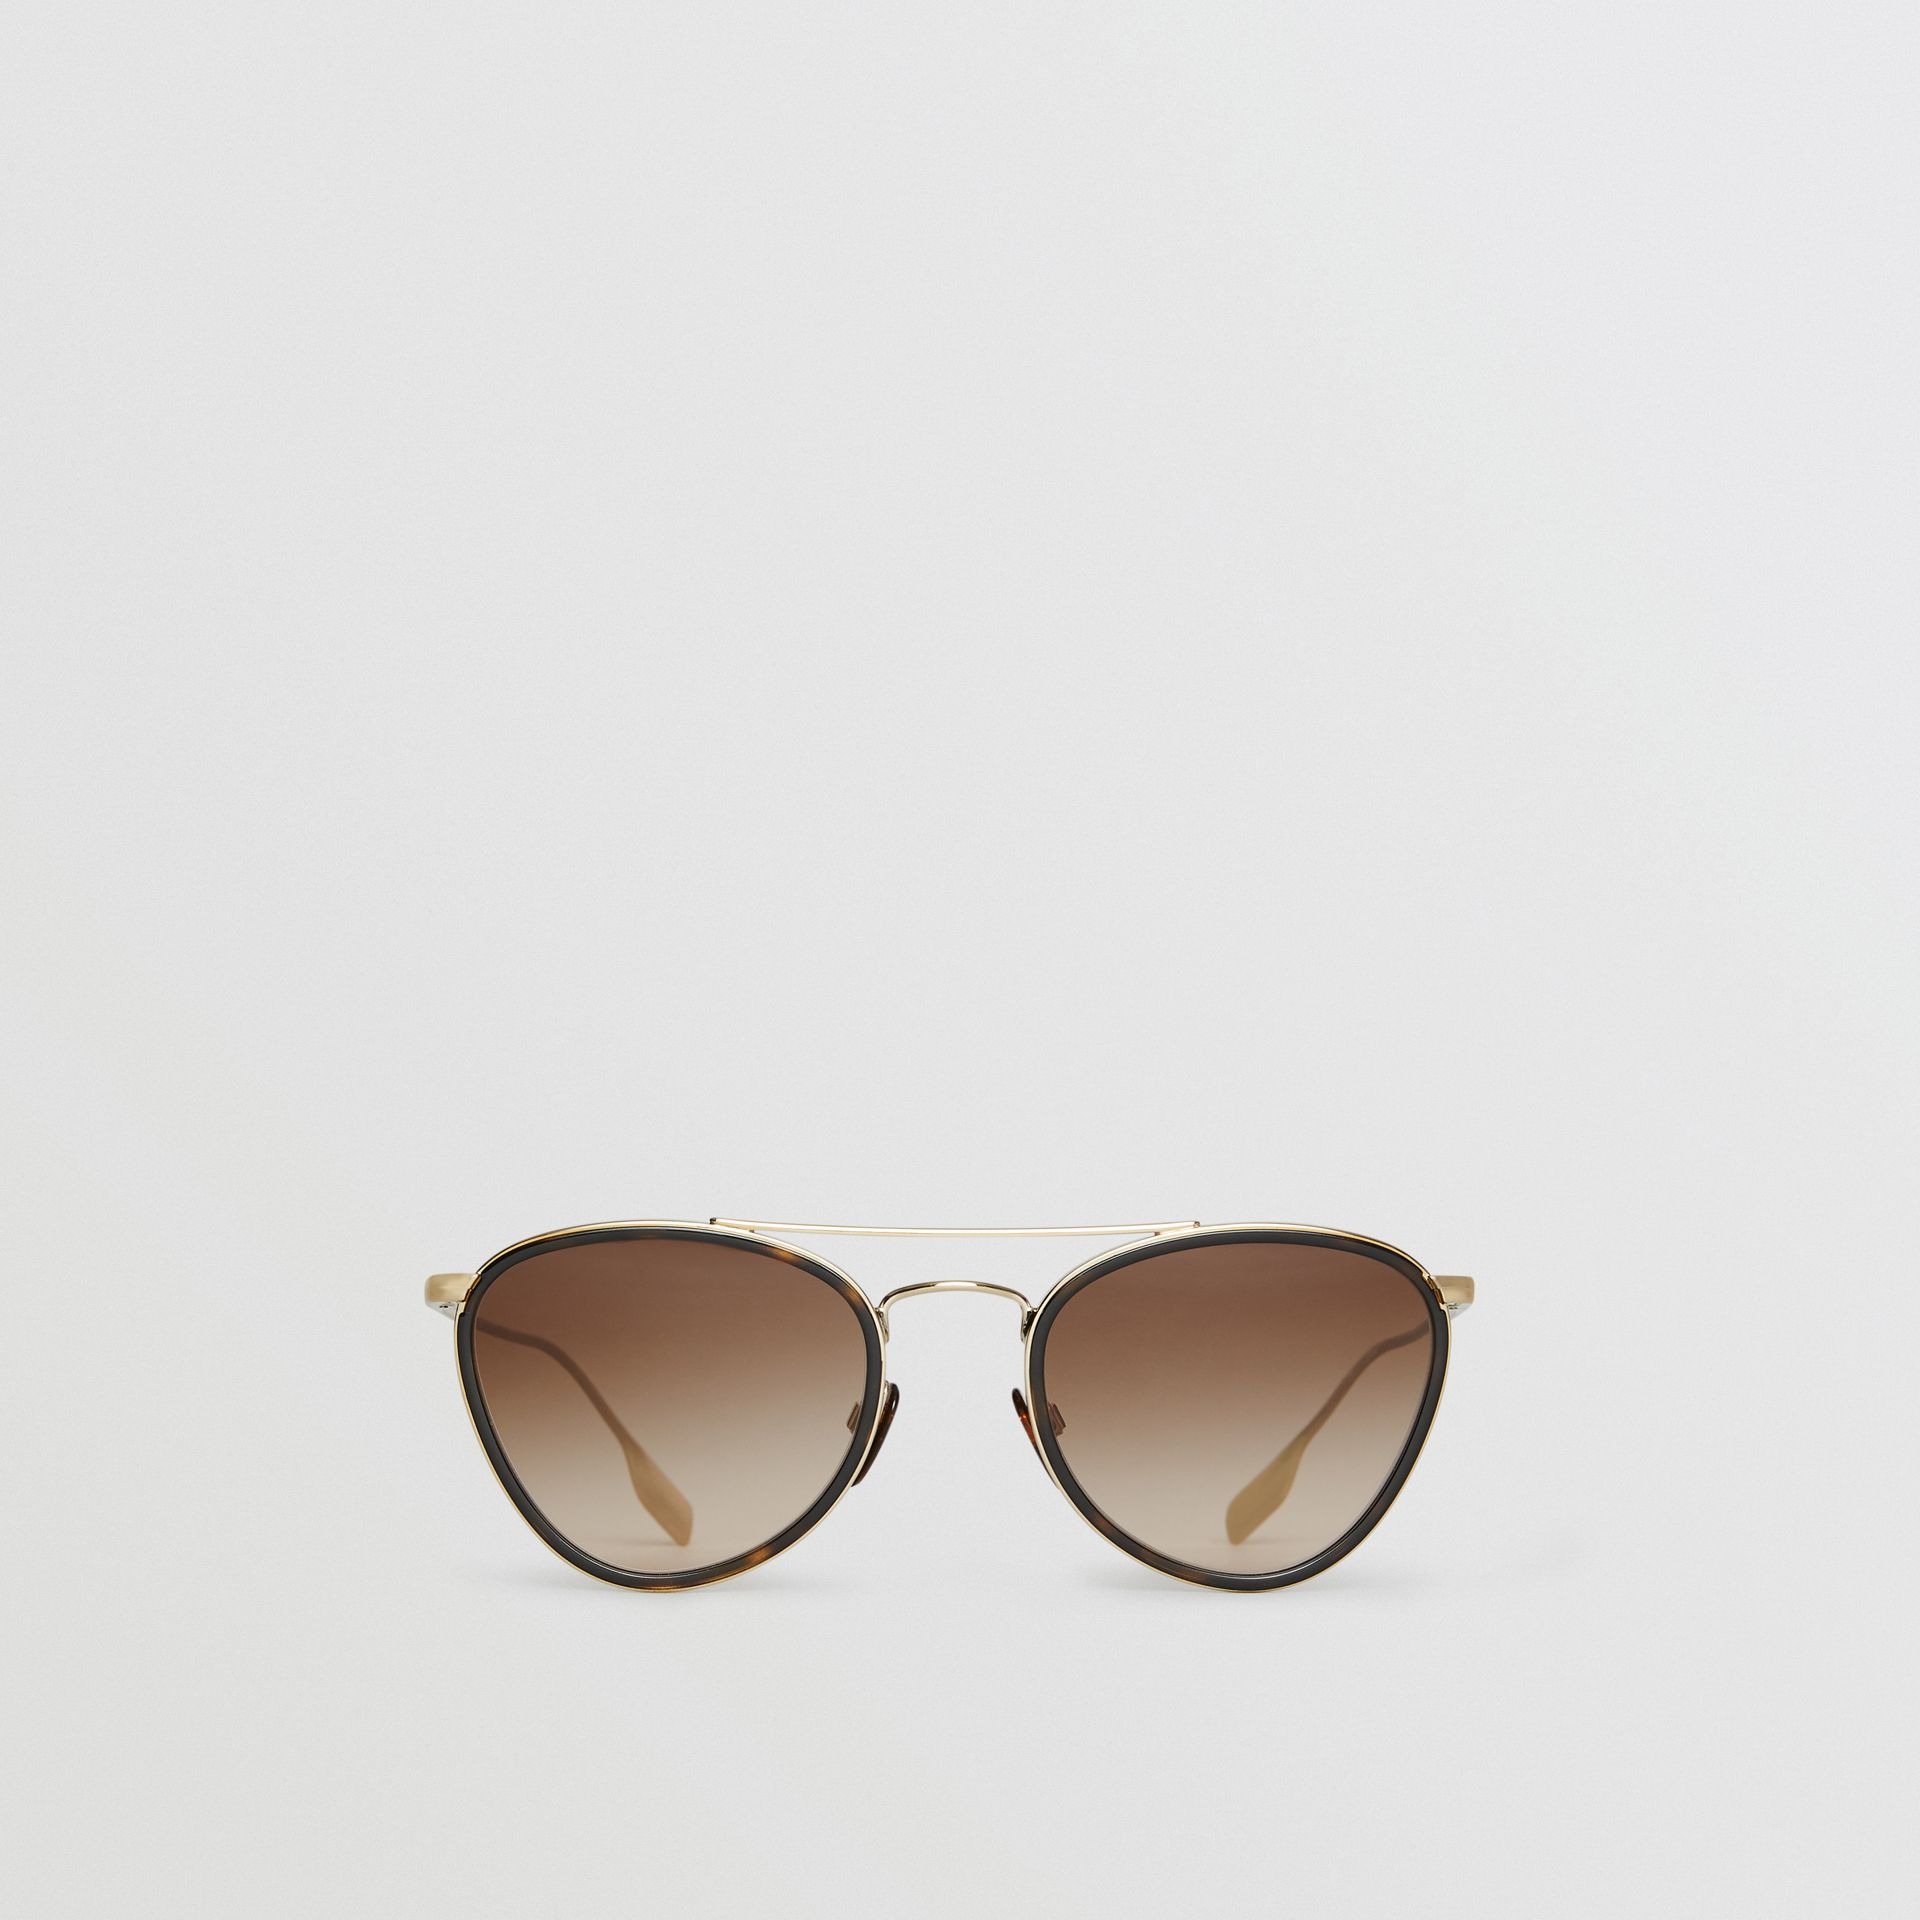 Pilot Sunglasses in Tortoise Shell - Women | Burberry - gallery image 0